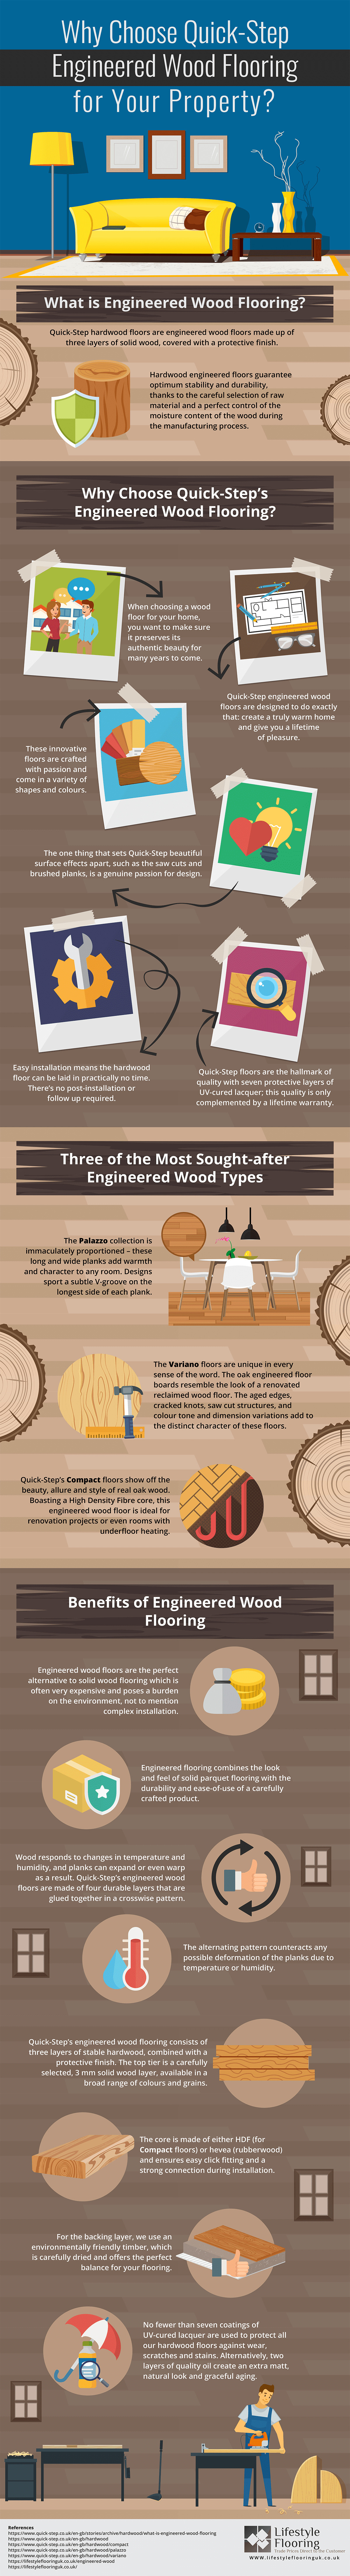 how to install engineered hardwood flooring on stairs of why choose quick step engineered wood flooring csw pertaining to if youre looking to find out more information this infographic below from lifestyle flooring takes a look at the advantages of quick step engineered wood